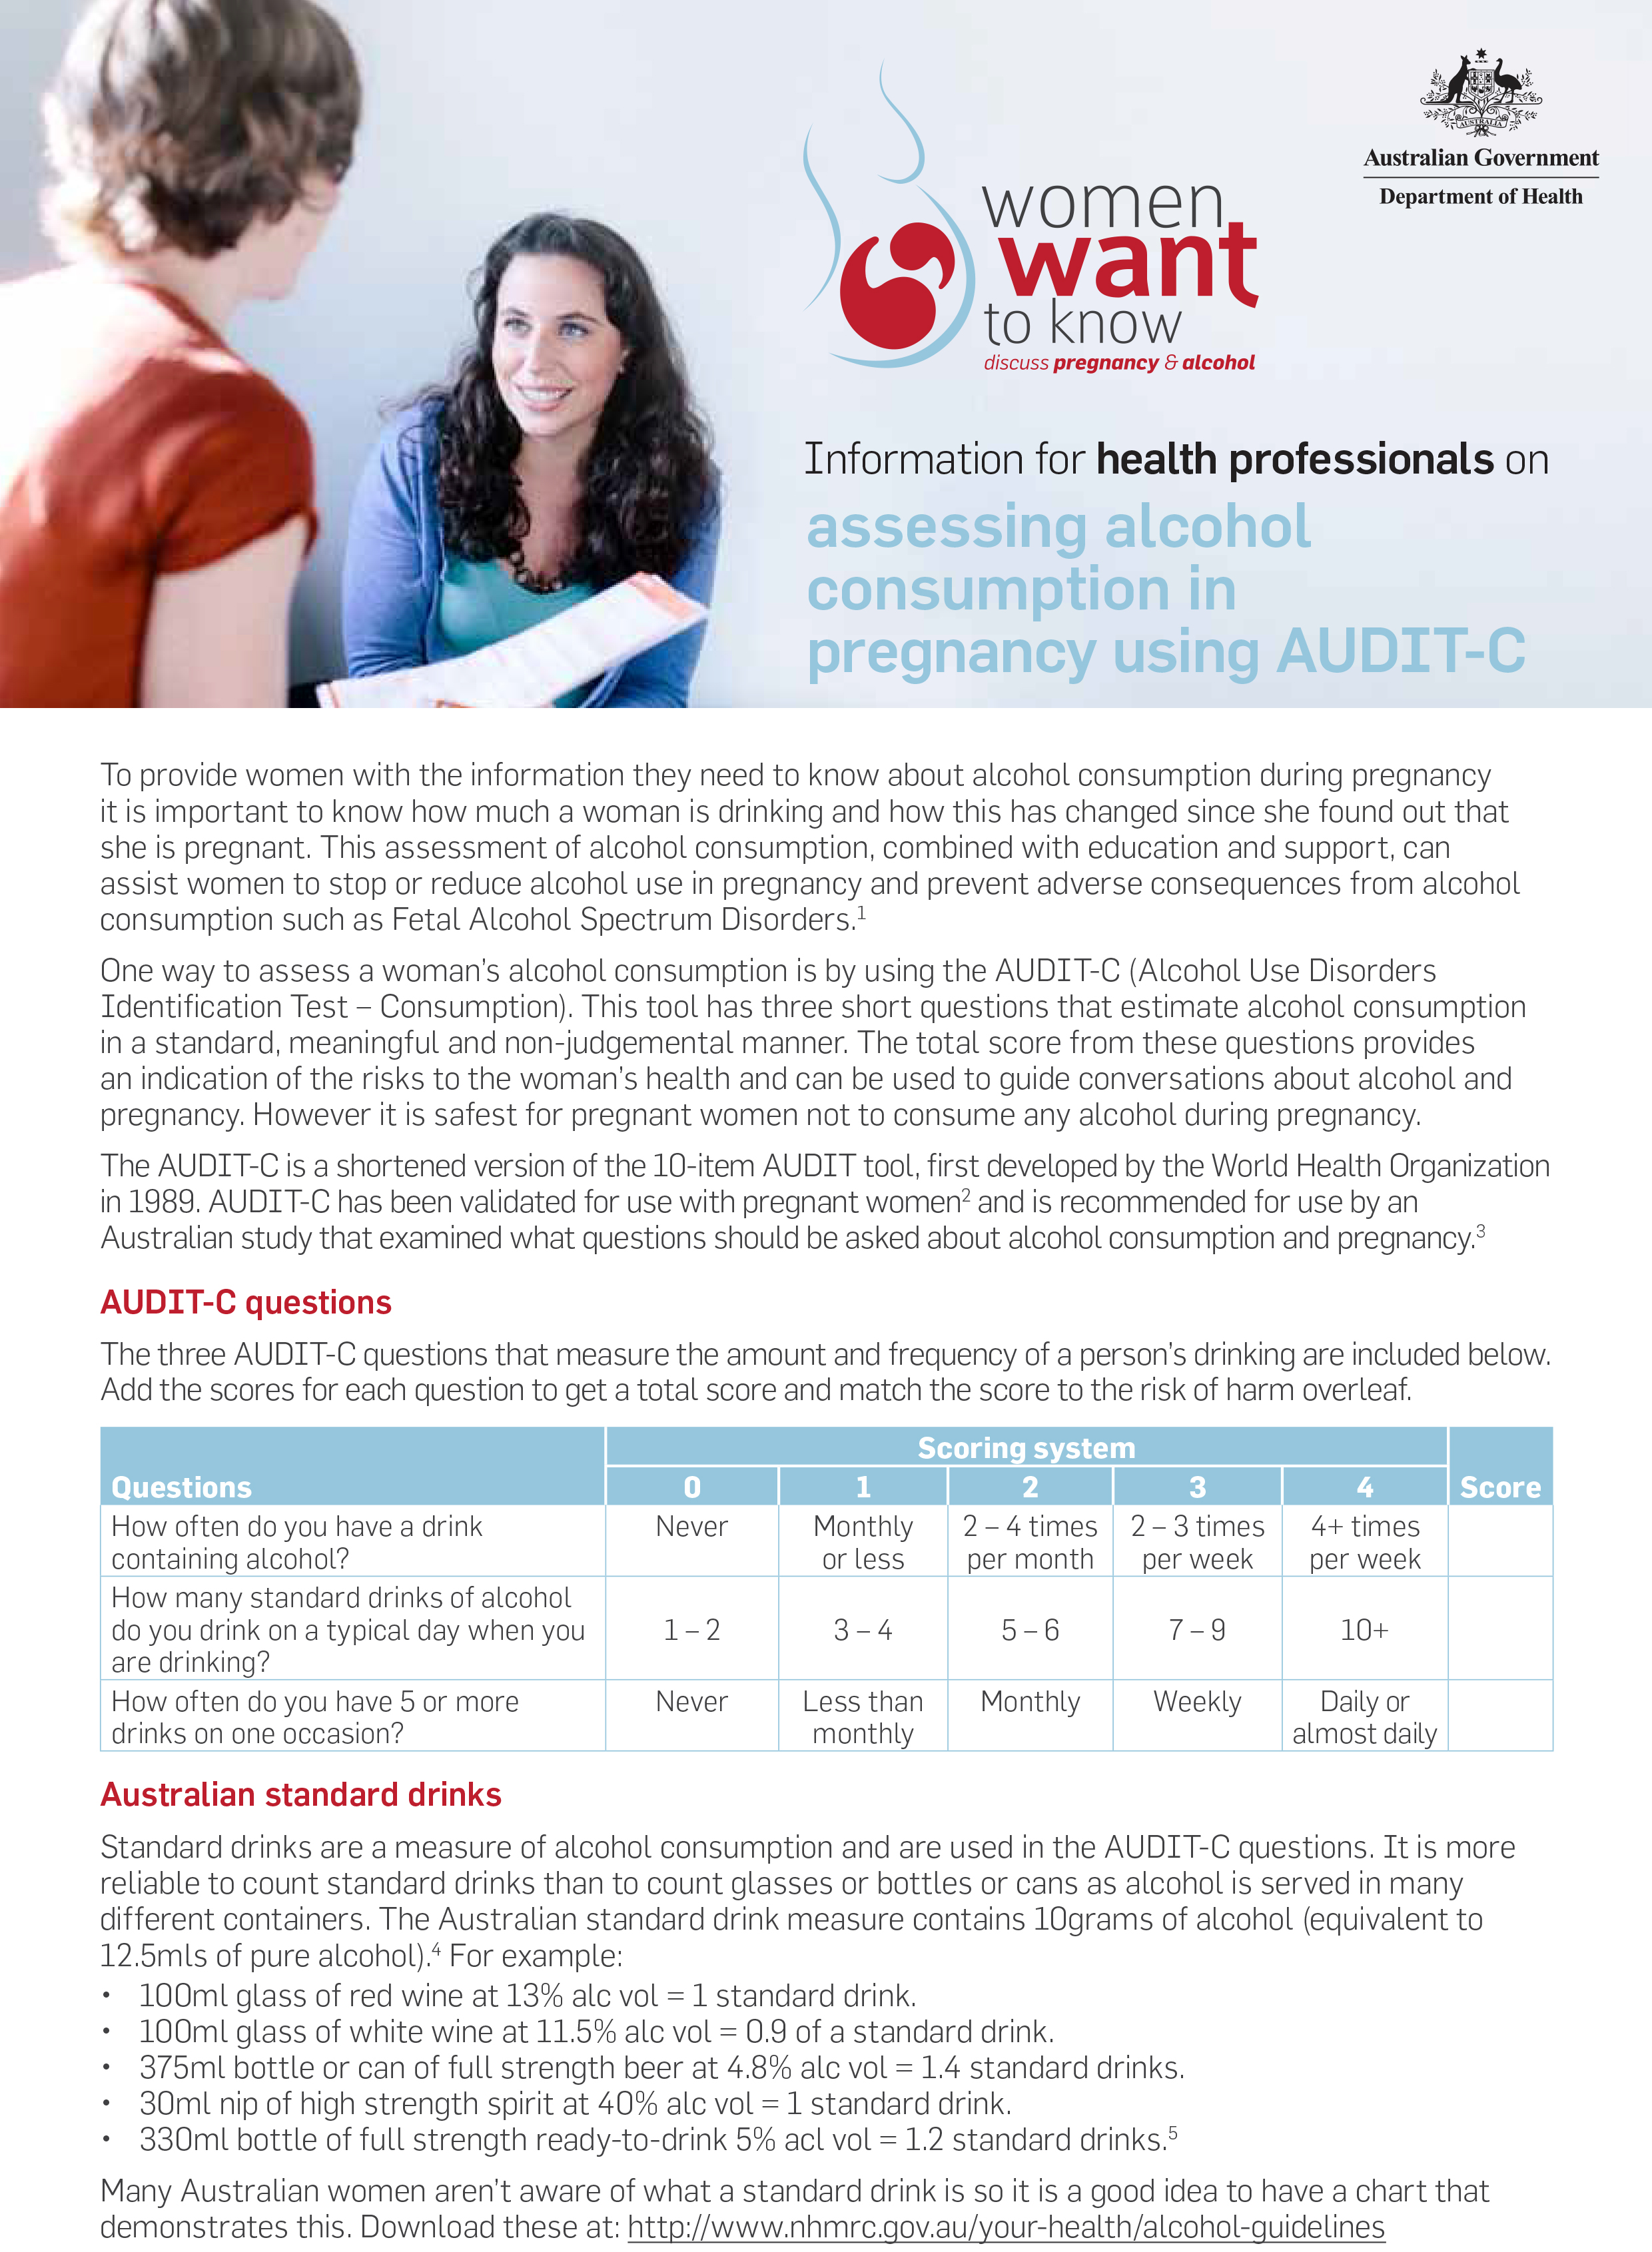 Pregnancy and Alcohol - Assessing Alcohol Consumption in Pregnancy Using AUDIT-C - DOHA (2014)